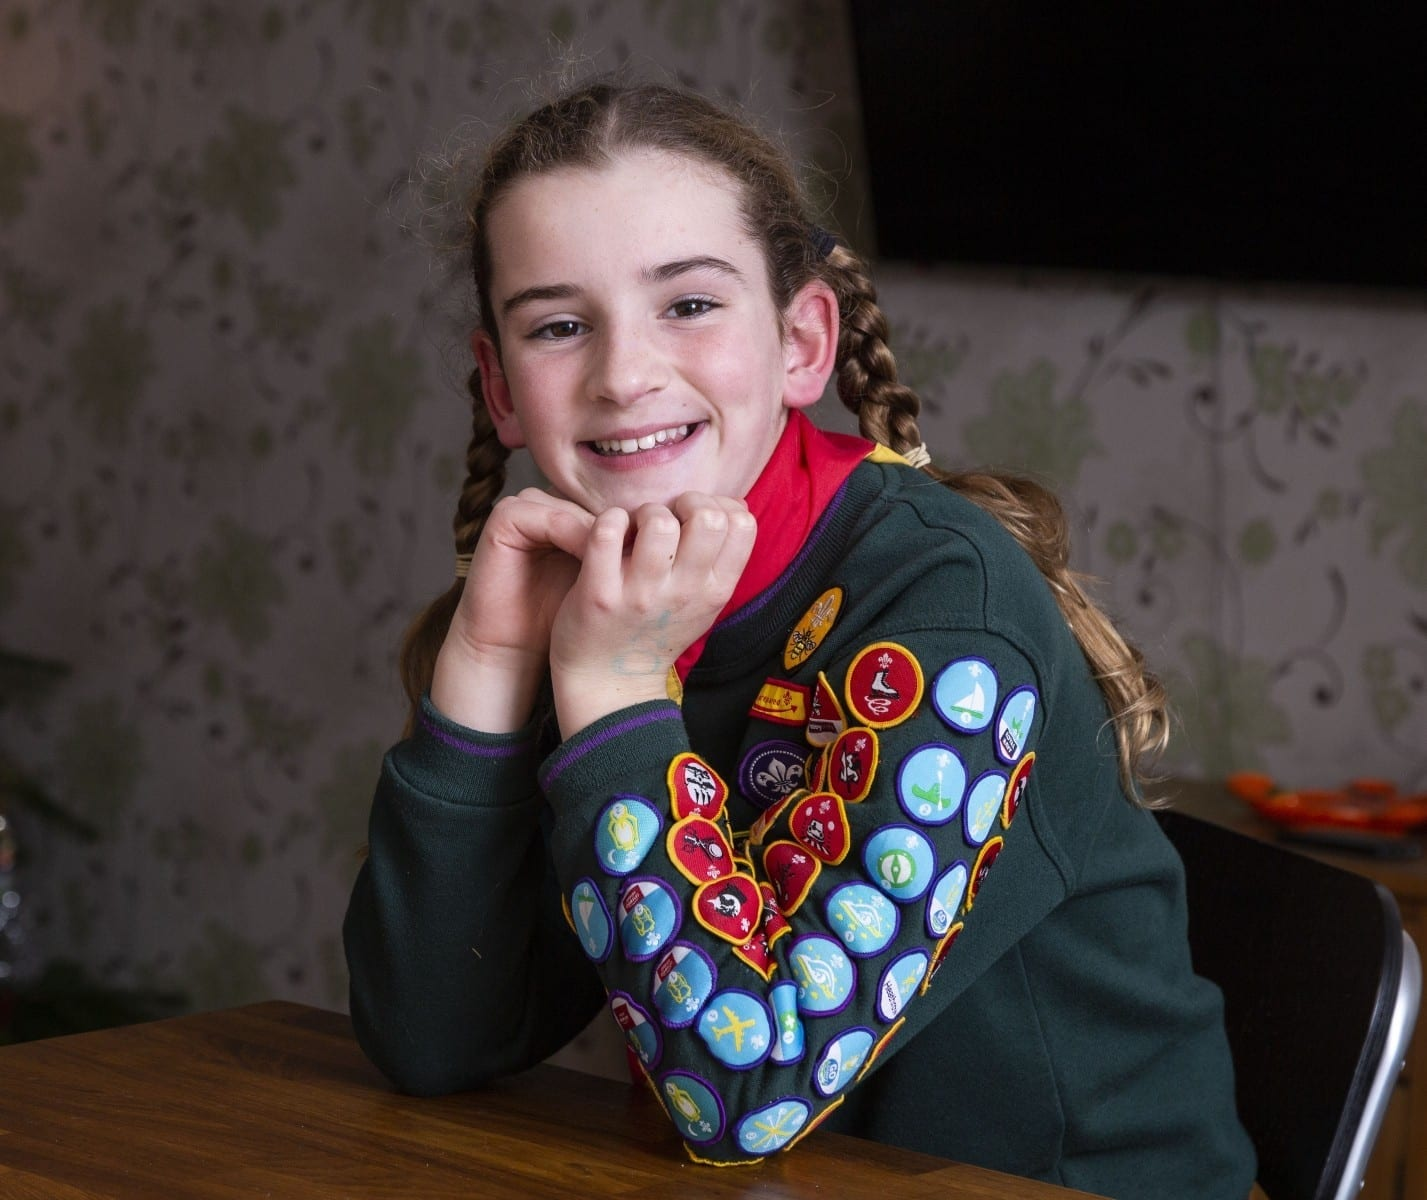 'I Can't Picture Myself Not Being A Cub Or Beaver' – Ten-Year-Old Girl Has Become One Of The First Girl Scouts To Get Every Single Beaver And Cub Activity Badge